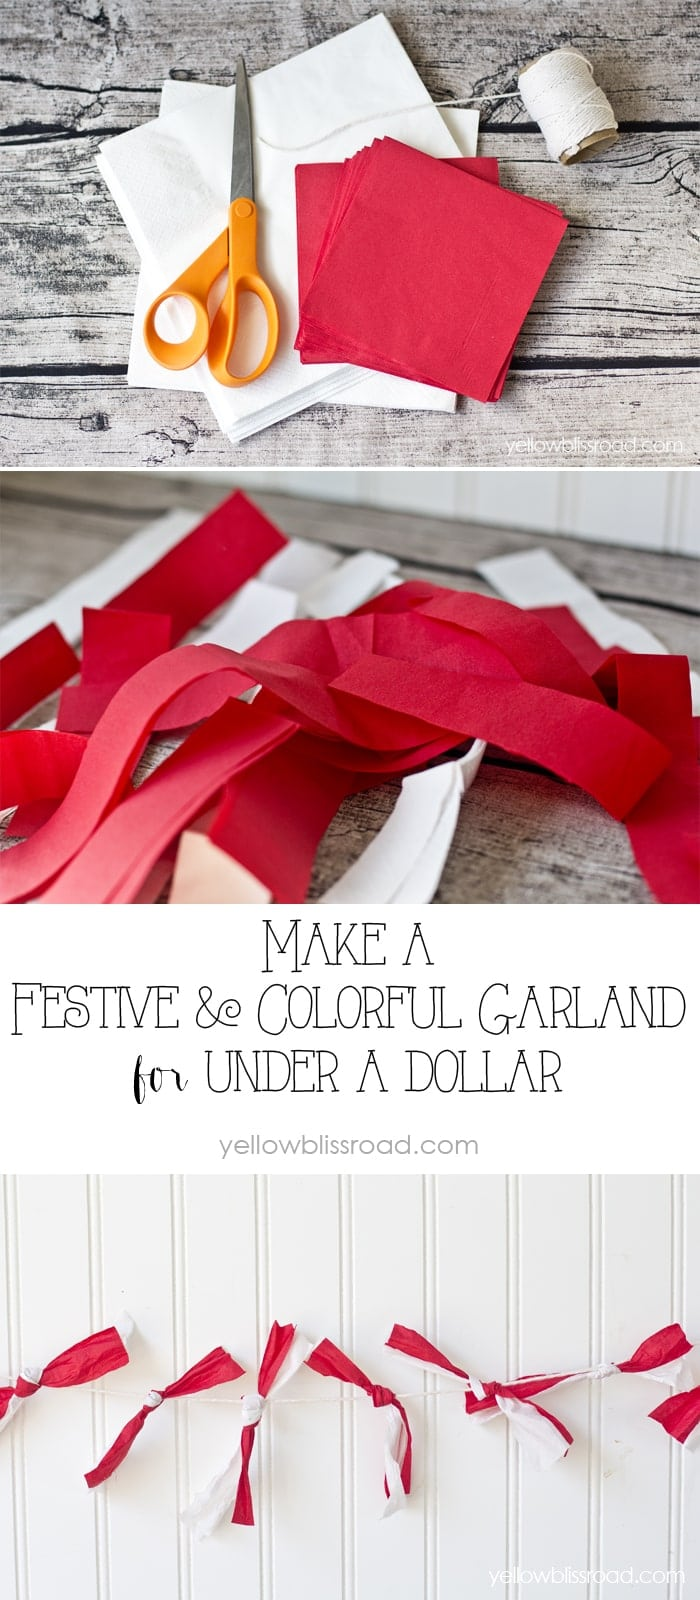 How to Make a Colorful and Festive Garland for Under a Dollar